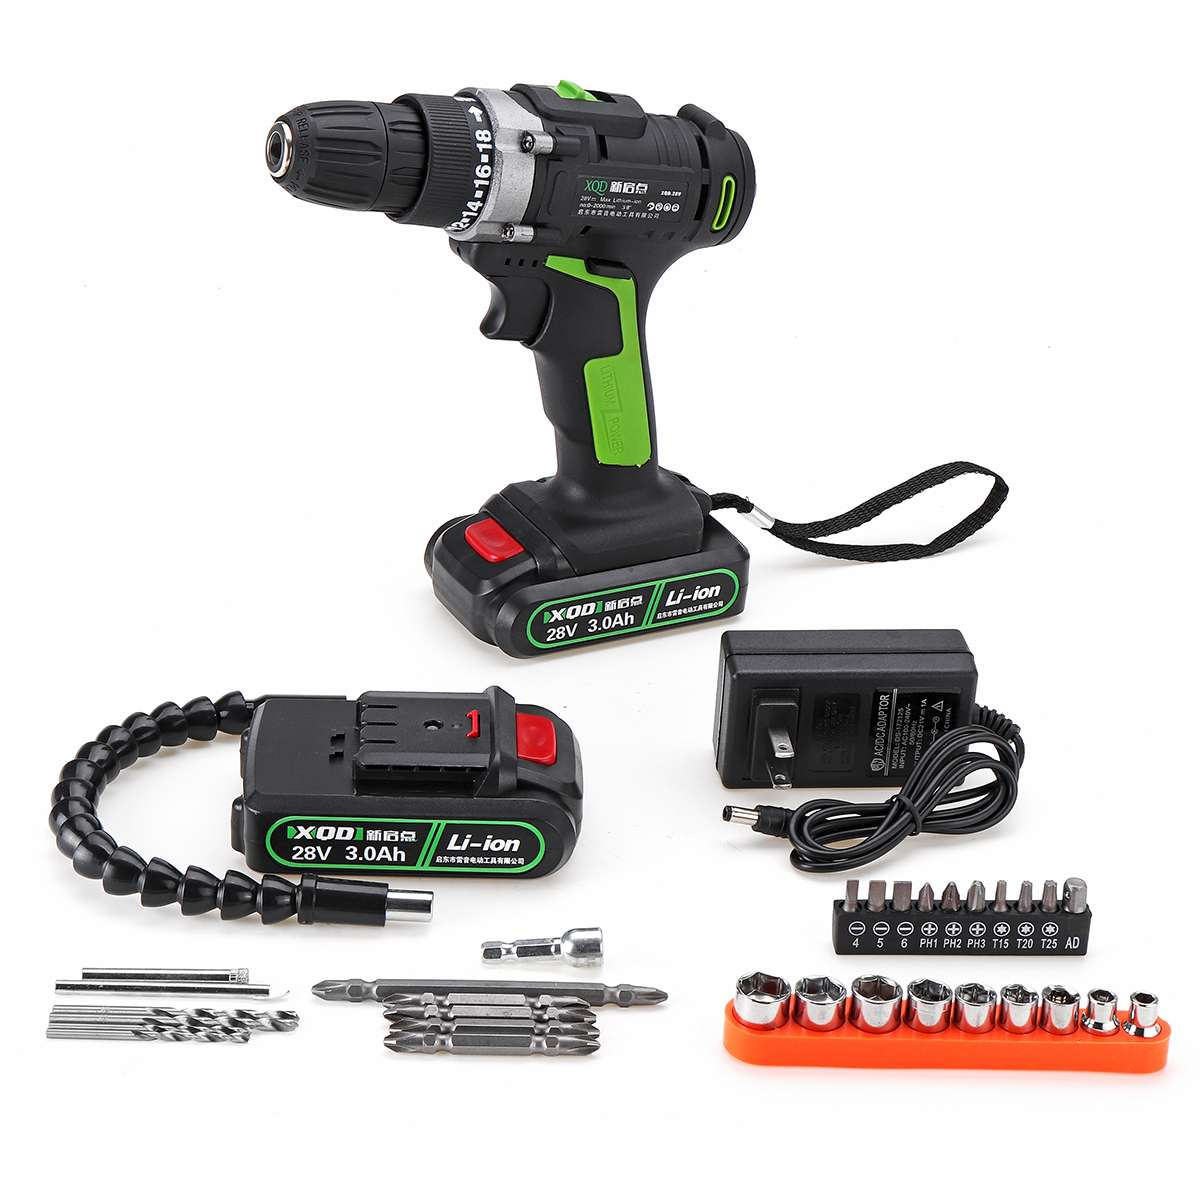 28V 3000mAh 2 Battery Double Speed Electric Impact Cordless Drill 18+1 Clutches Wireless Electric Drill  Home DIY Power Tool28V 3000mAh 2 Battery Double Speed Electric Impact Cordless Drill 18+1 Clutches Wireless Electric Drill  Home DIY Power Tool